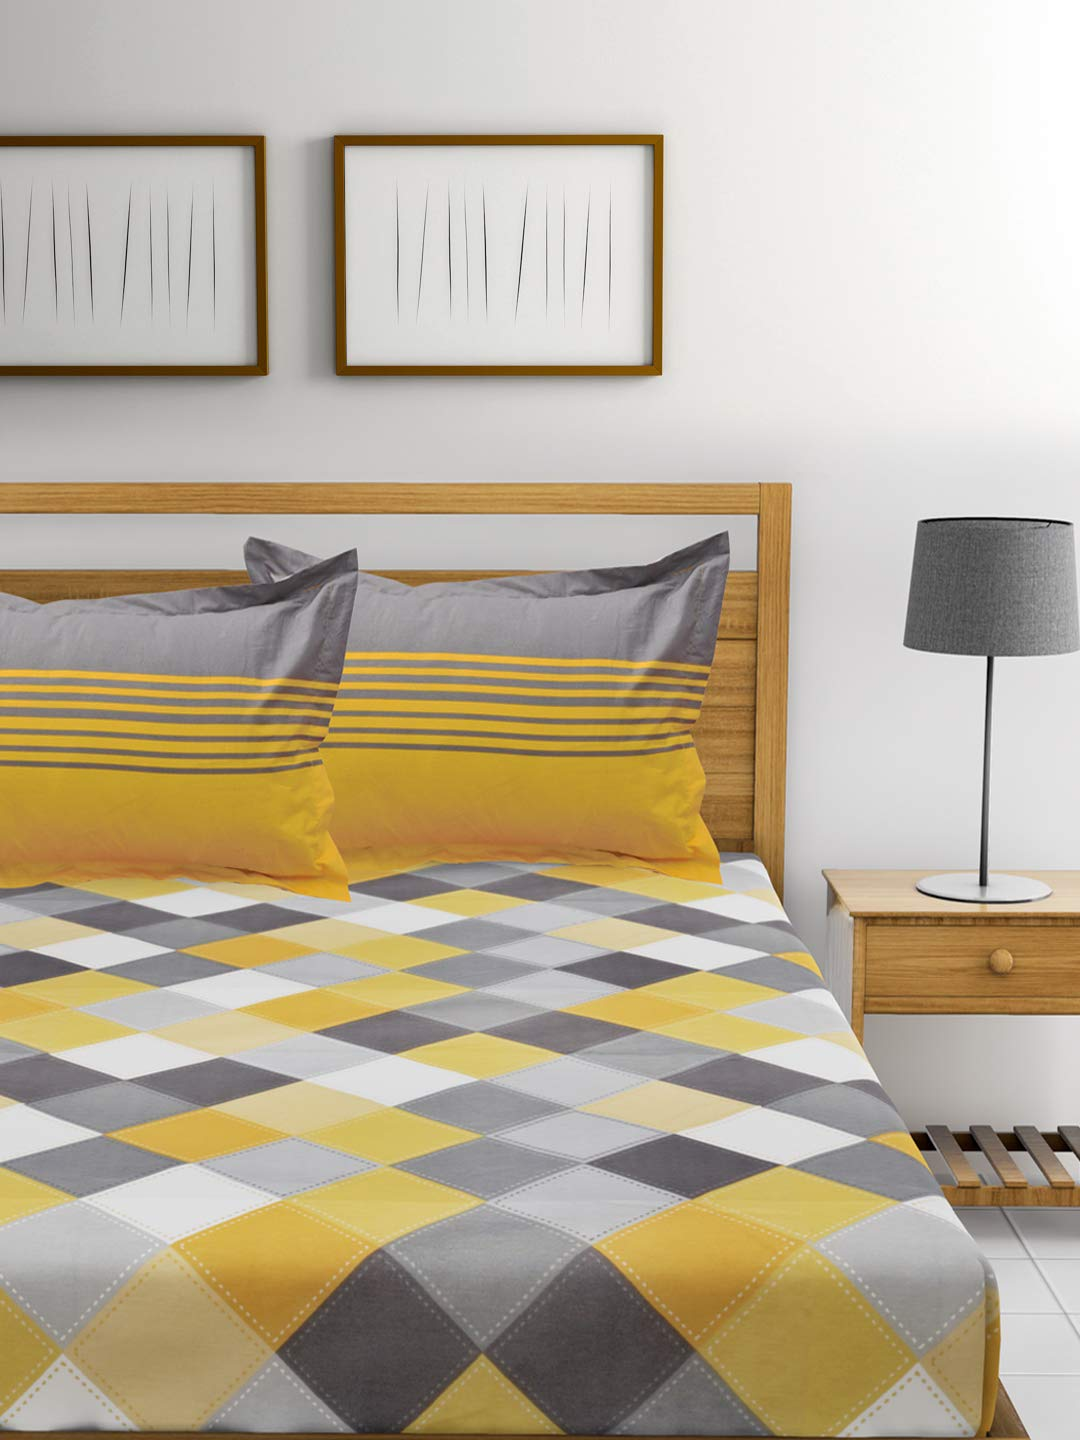 Ahmedabad Cotton 144 TC 100% Cotton Double Bedsheet with 2 Pillow Covers - Yellow and Grey,Ahmedabad Cotton,ACB30D00312,bed sheets for double bed,bedsheets,bedsheets for double bed,bedsheets for double bed cotton,bedsheets for single bed,double bedsheets with 2 pillow covers cotton,king size bed sheets with pillow covers